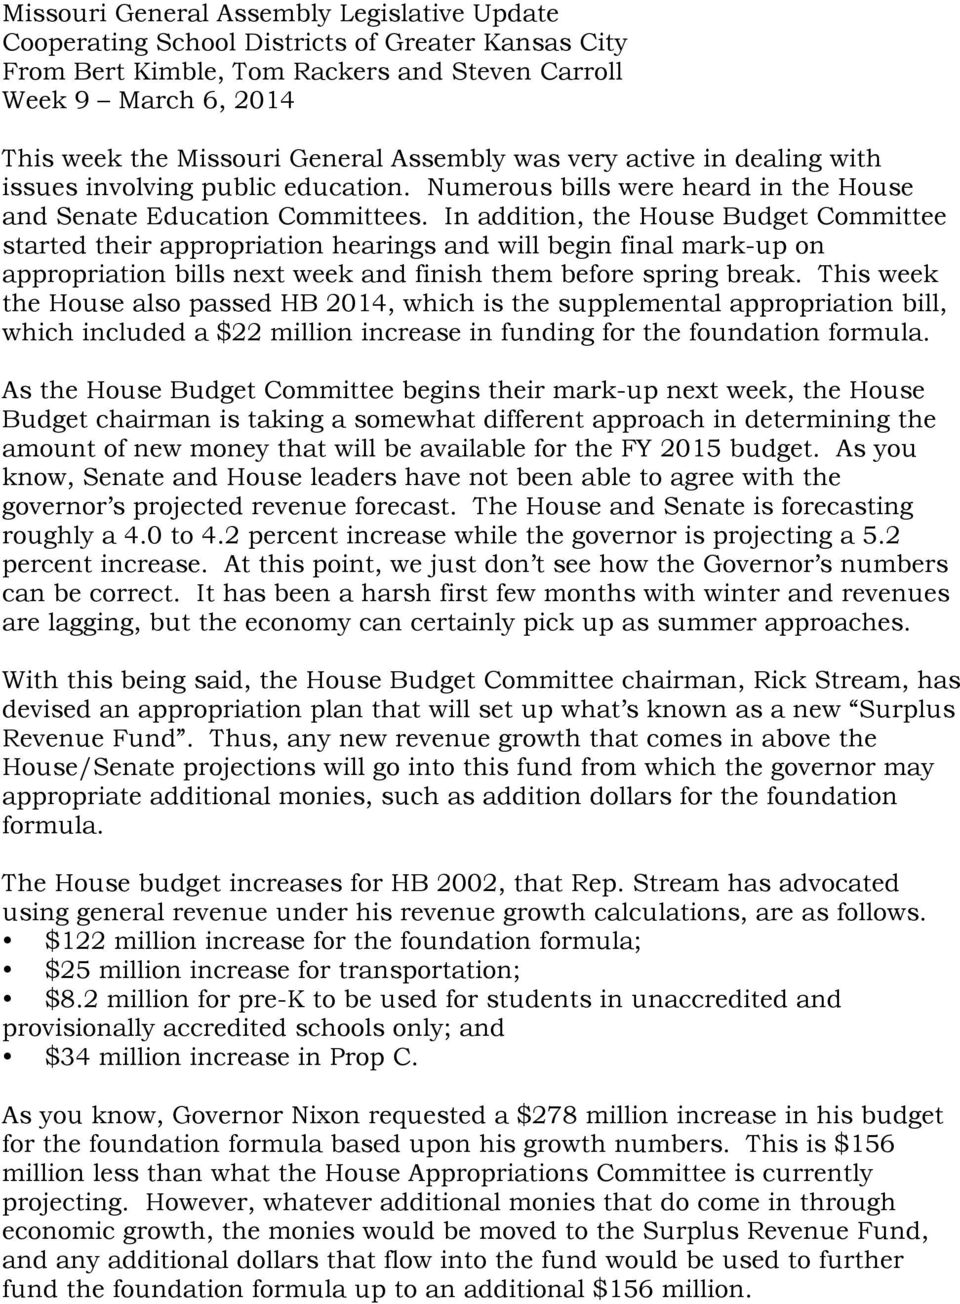 In addition, the House Budget Committee started their appropriation hearings and will begin final mark-up on appropriation bills next week and finish them before spring break.